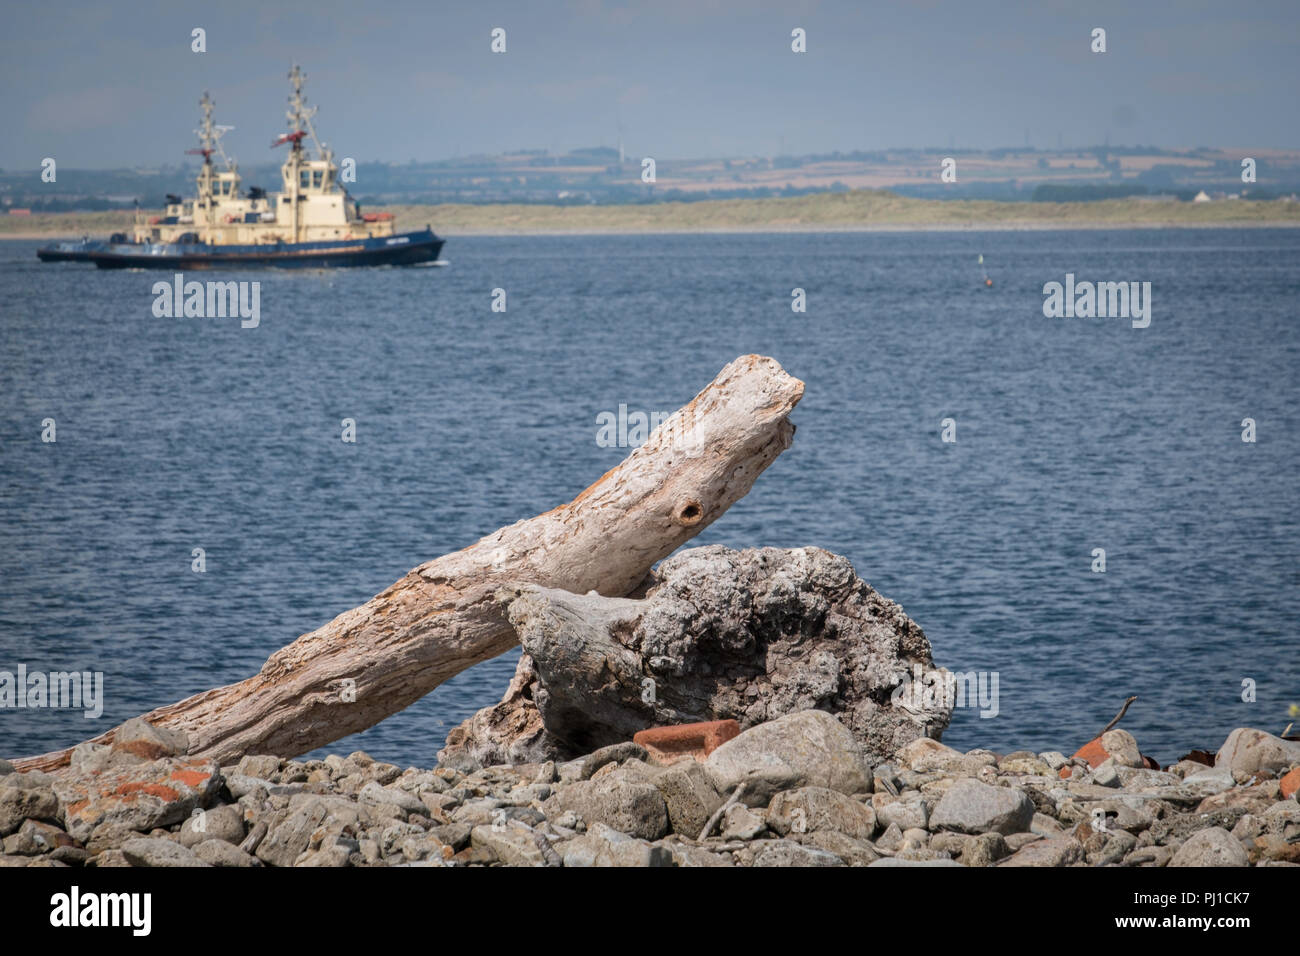 Tugs set out of the Tees past driftwood. - Stock Image